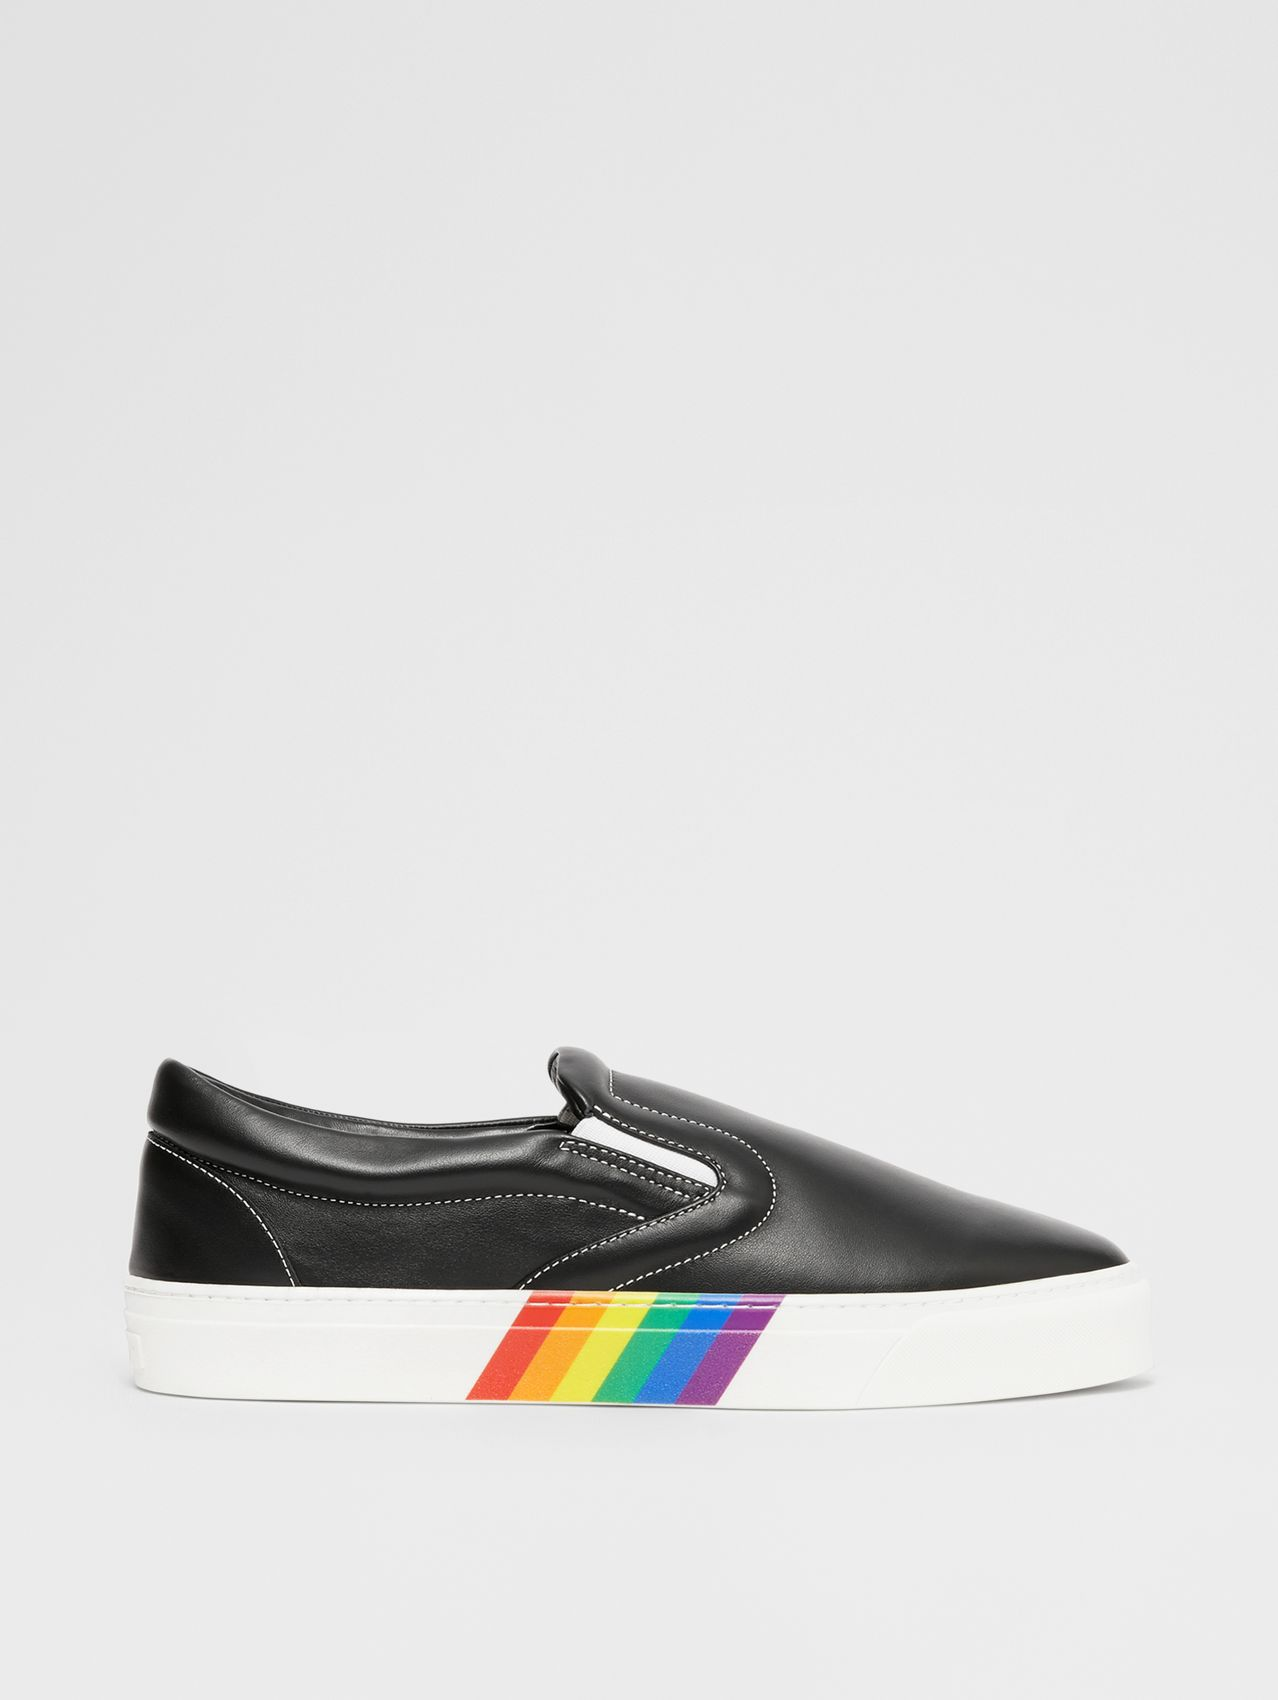 Bio-based Sole Leather Slip-on Sneakers in Black